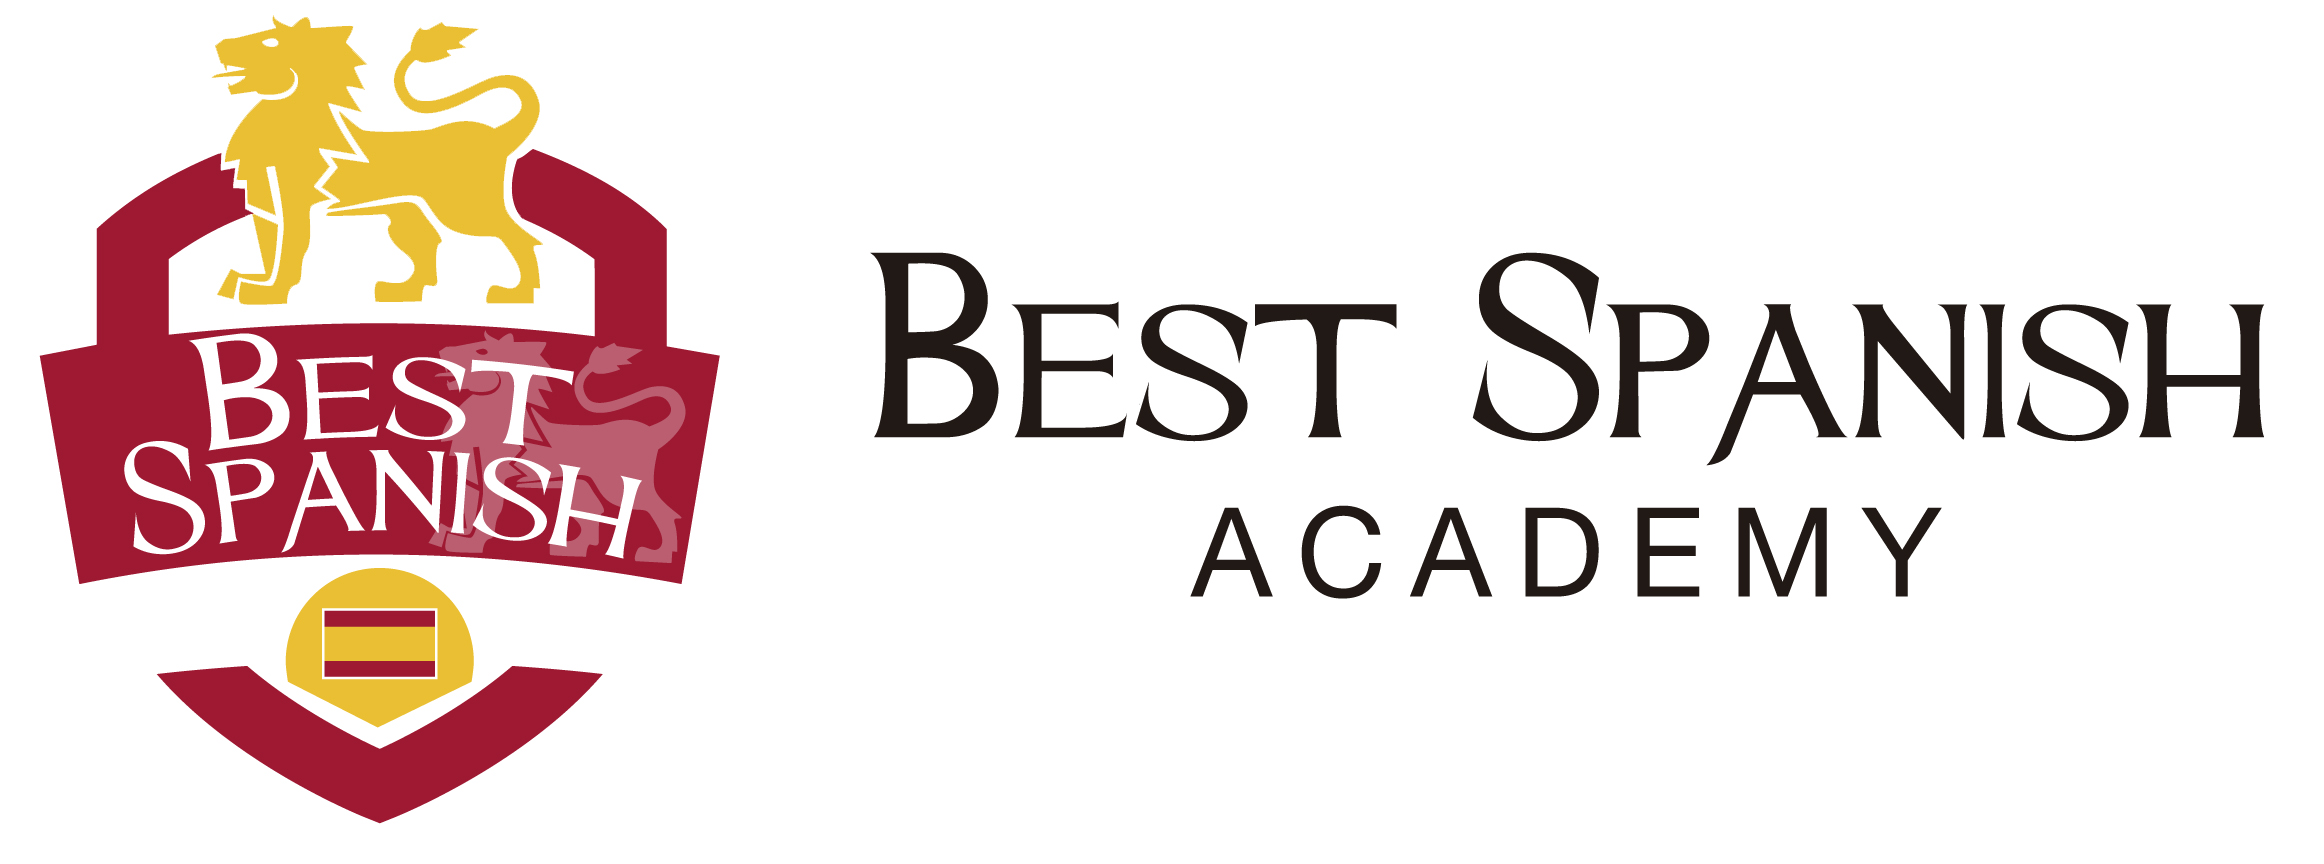 Best Spanish Academy